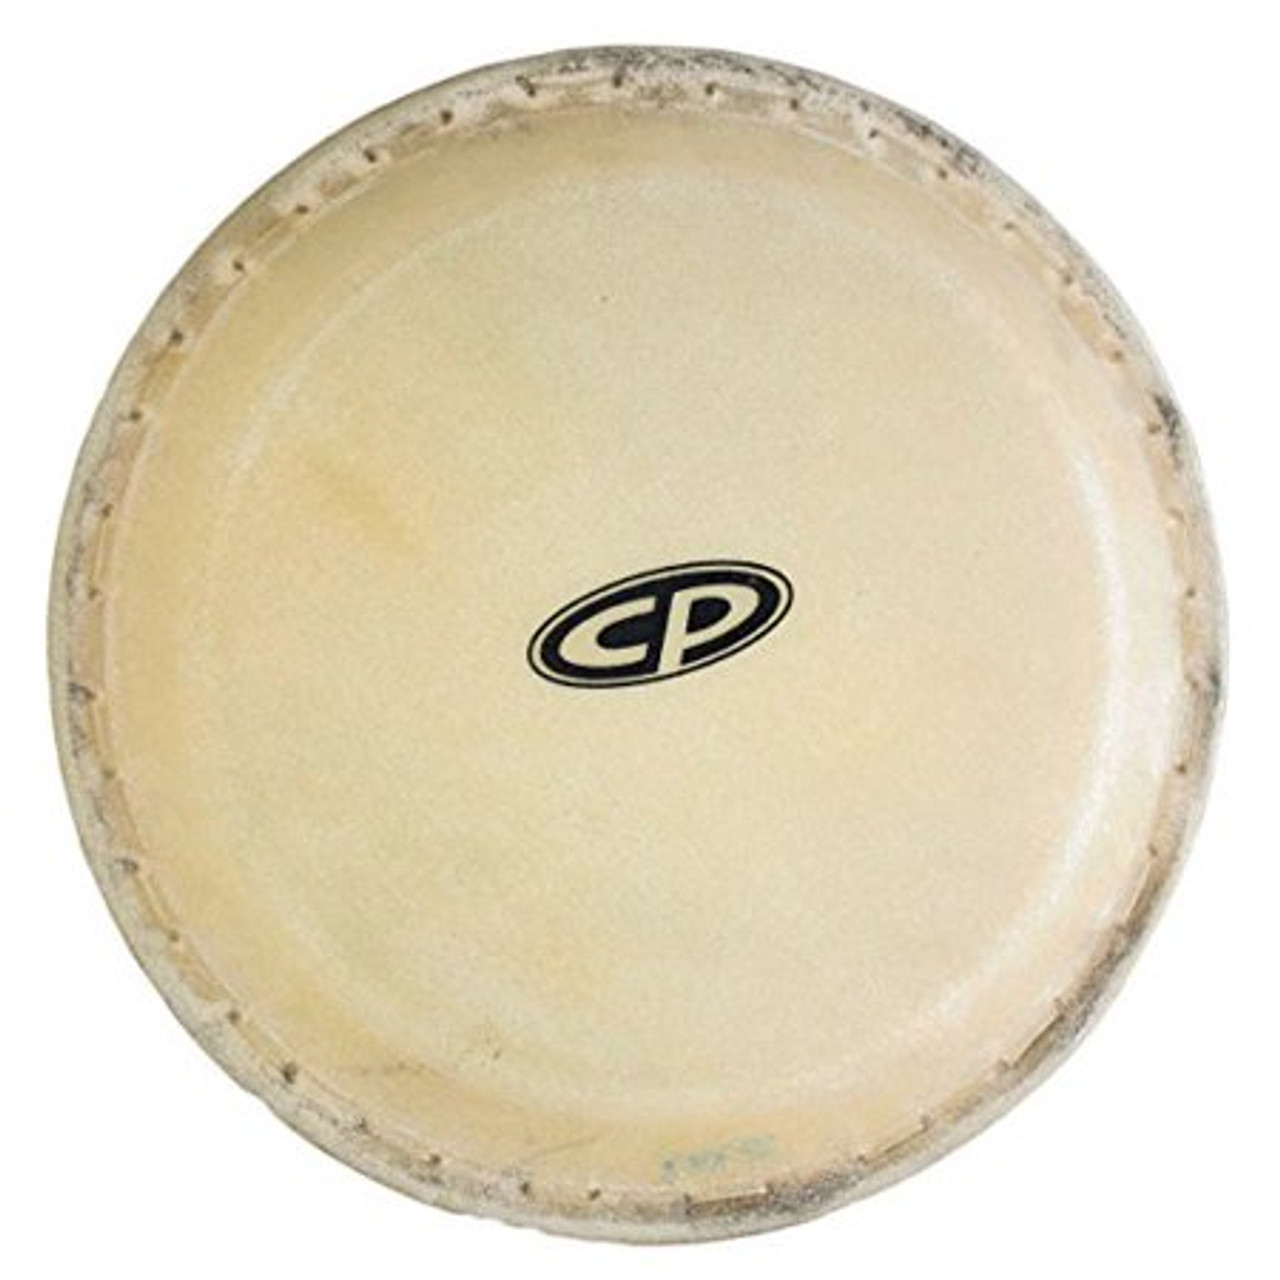 Drum Workshop Cp 10 in Rim for Cp636